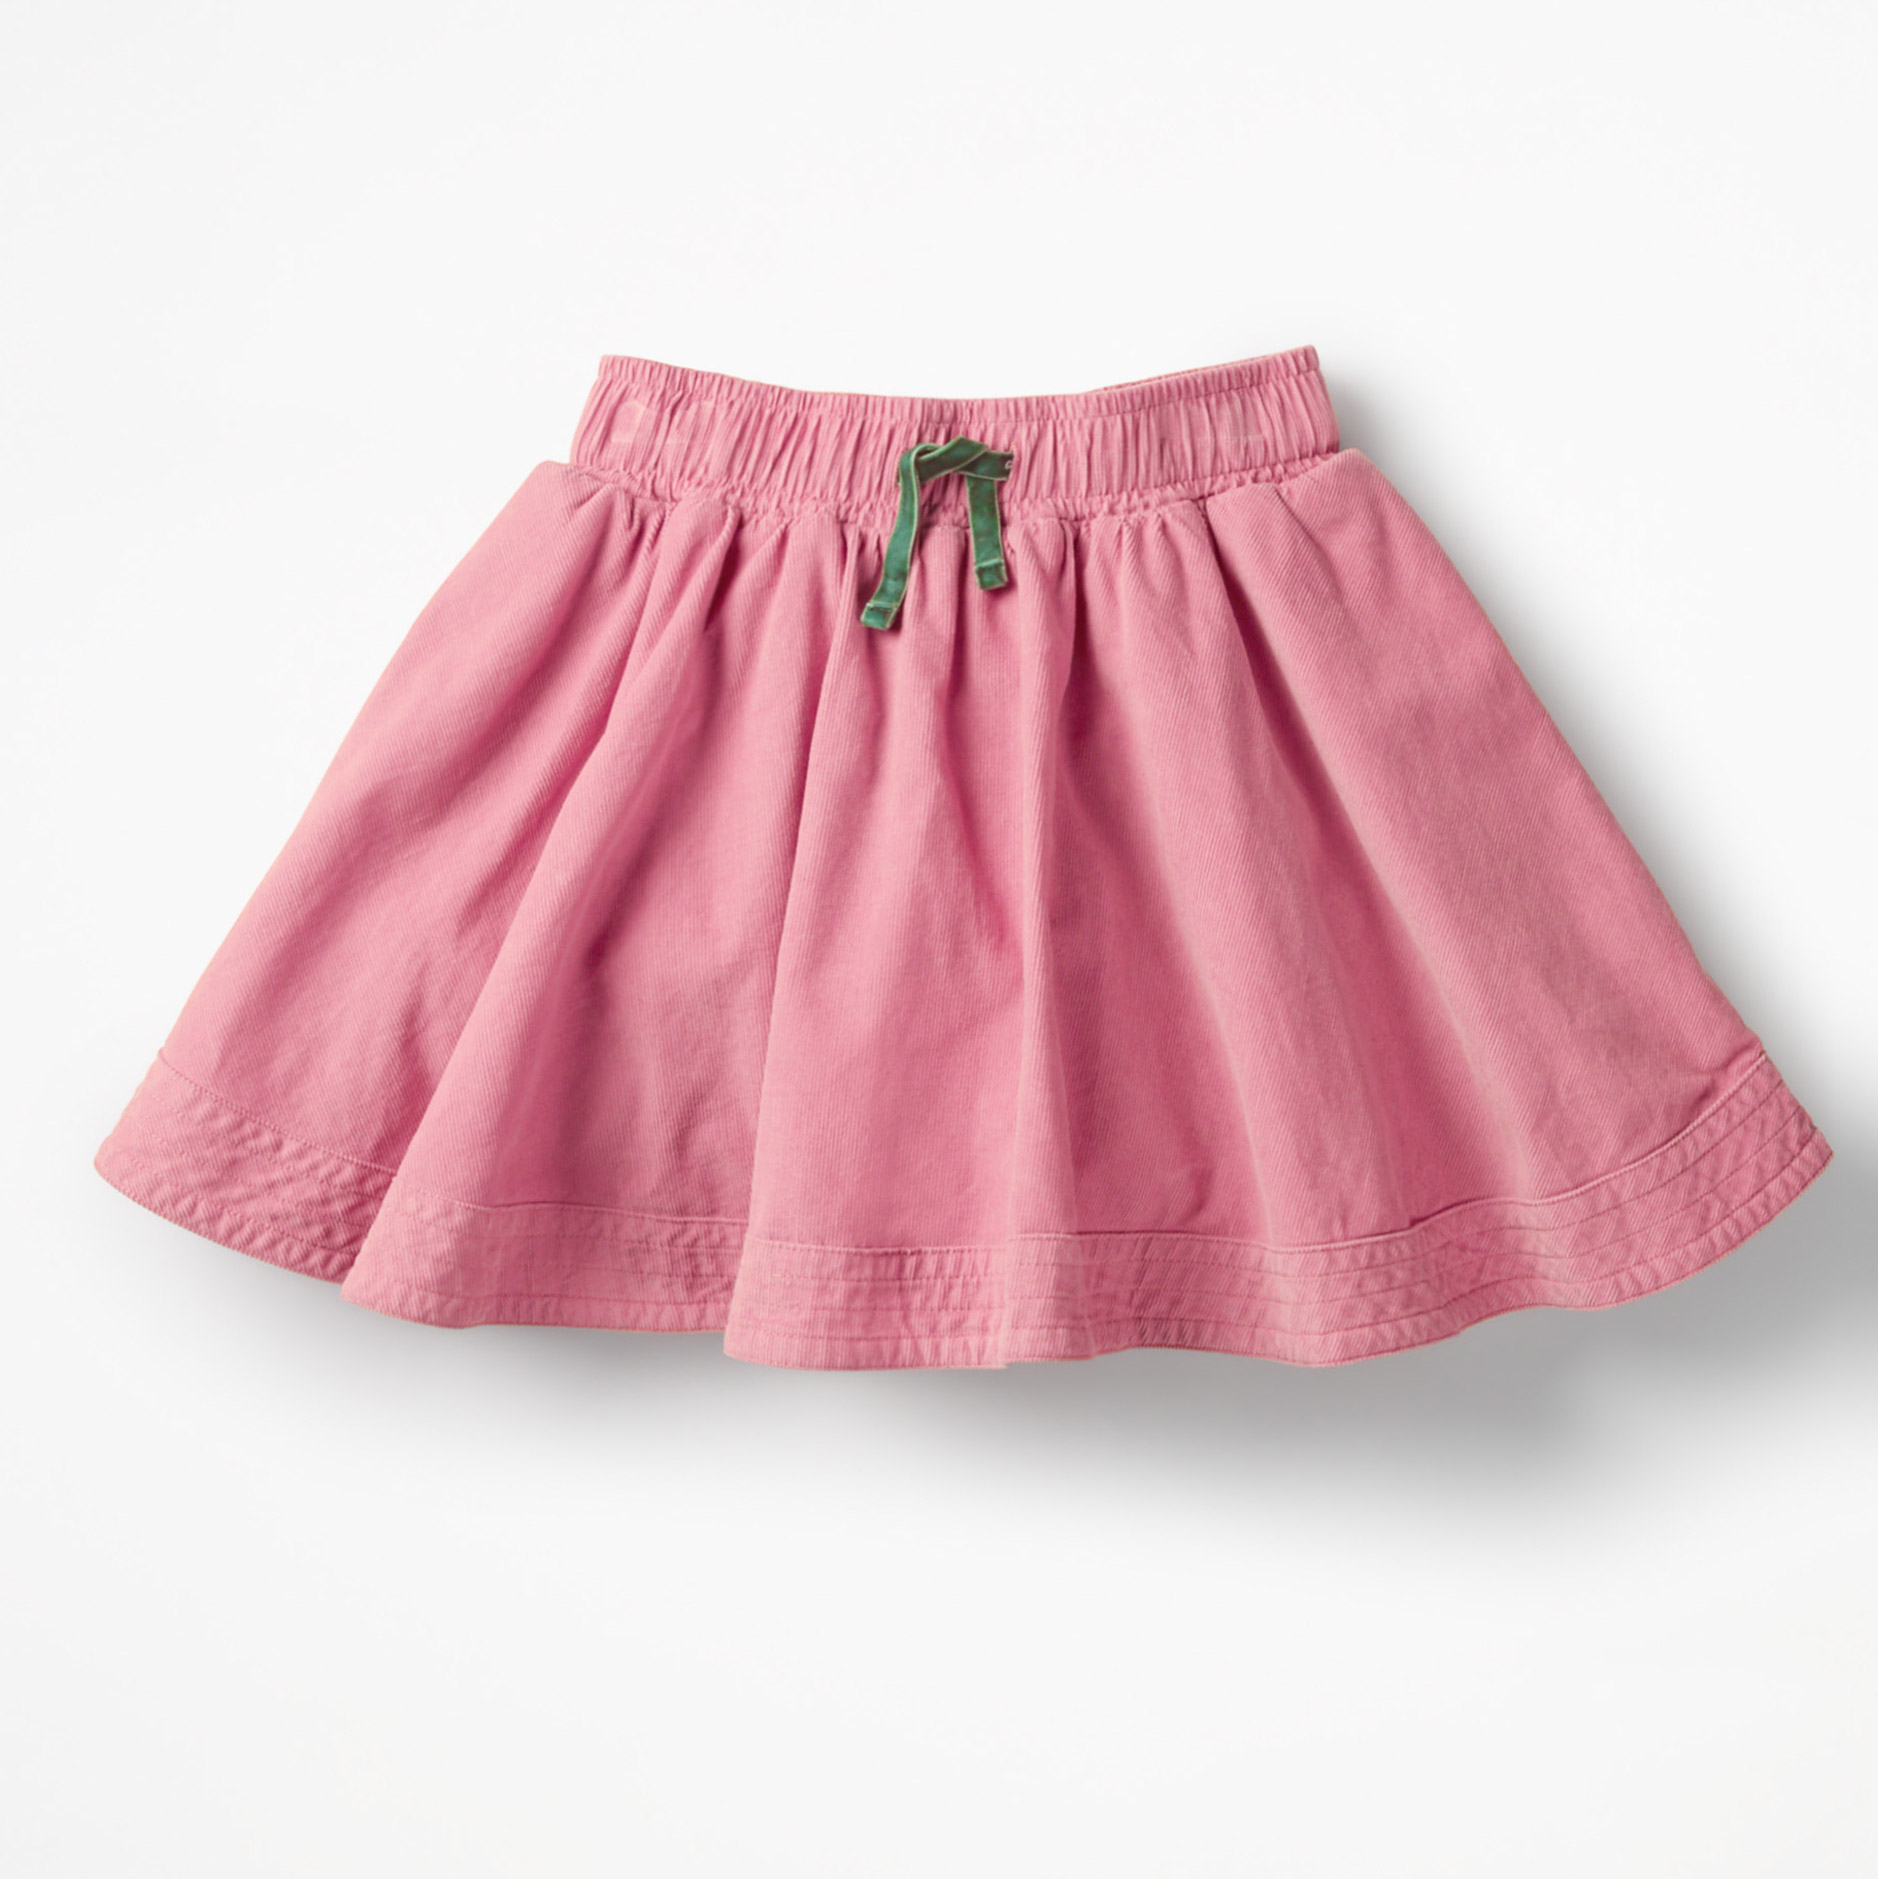 Boden Simple Colourful Skirt – Pink